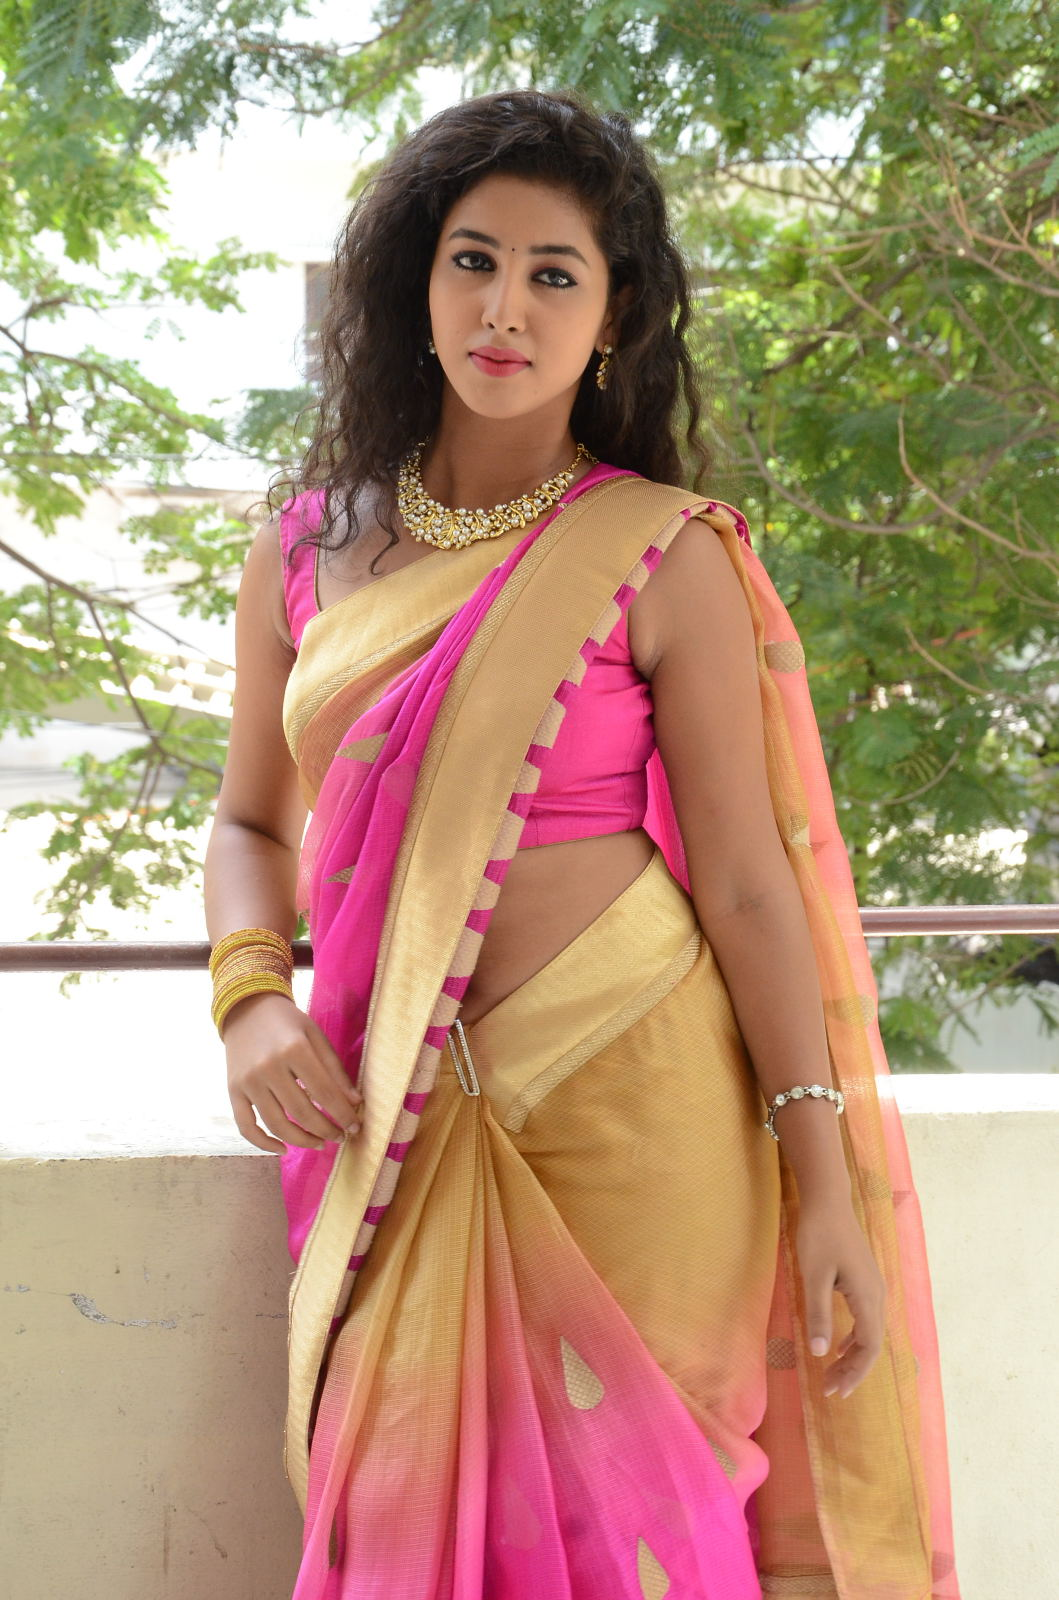 sizzling hot photos of south indian actresspankaj s.